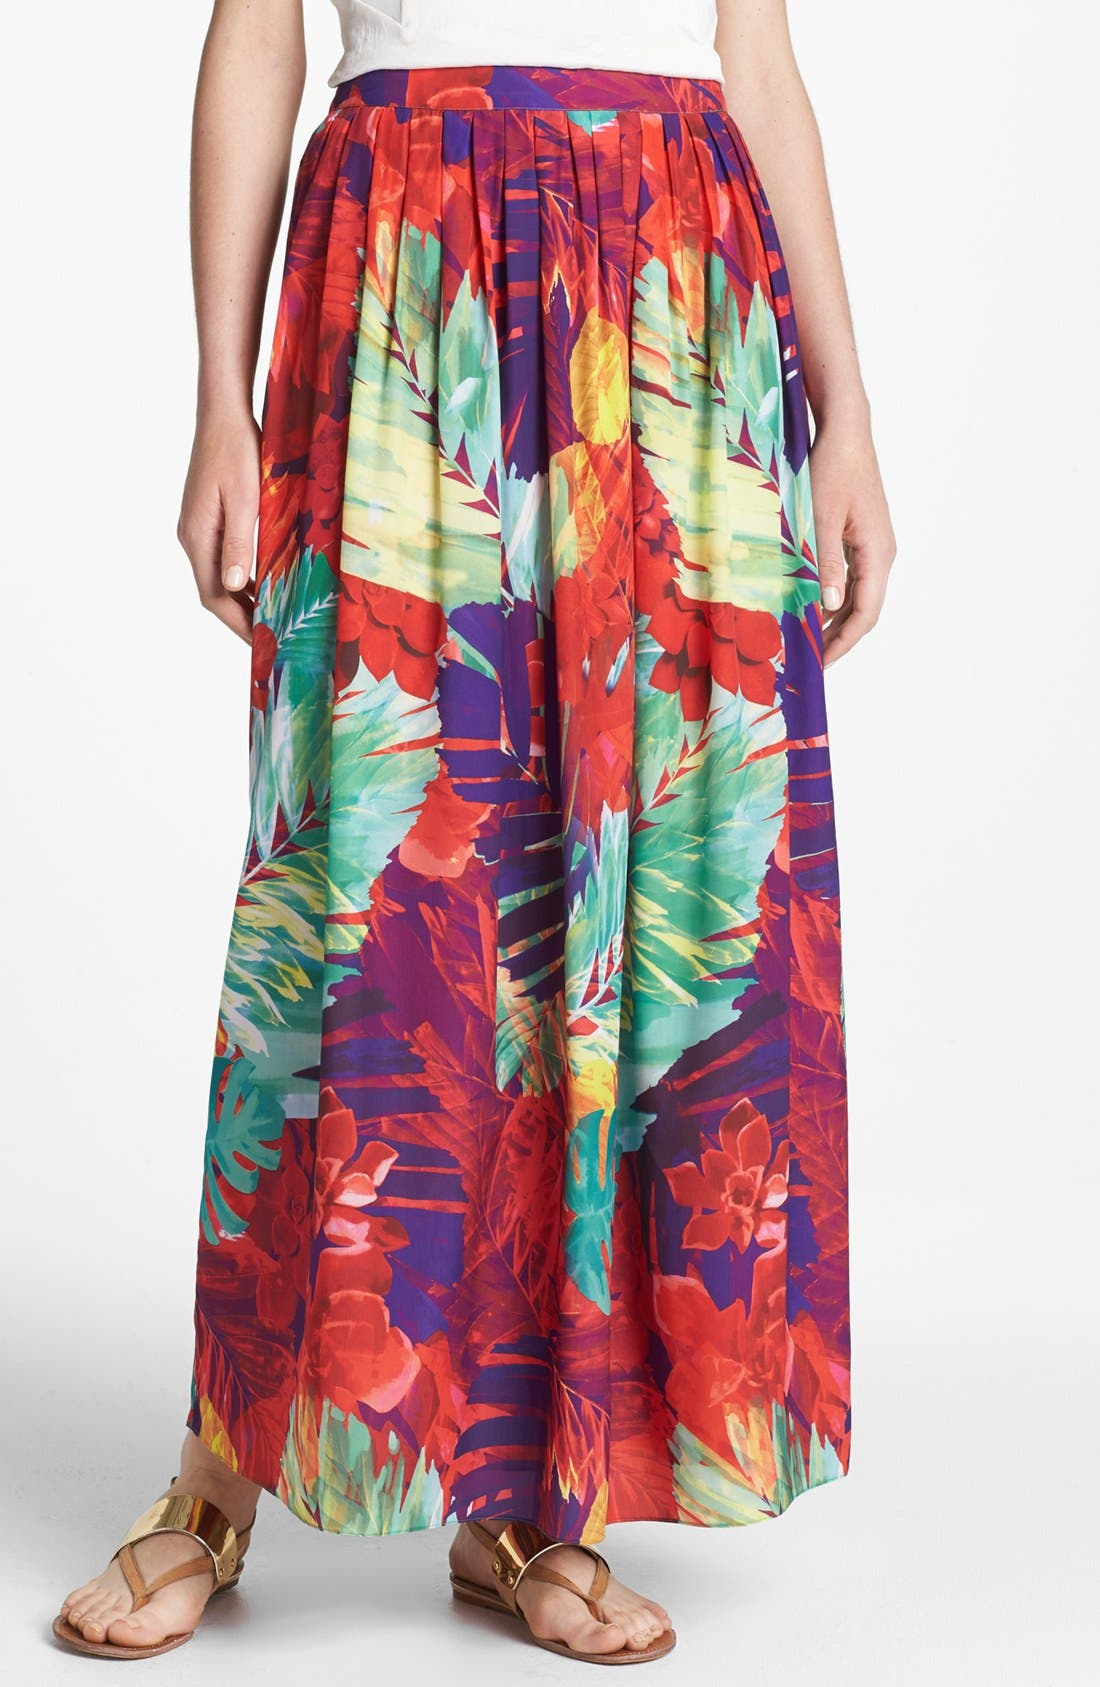 Alternate Image 1 Selected - Vince Camuto Gathered Print Maxi Skirt